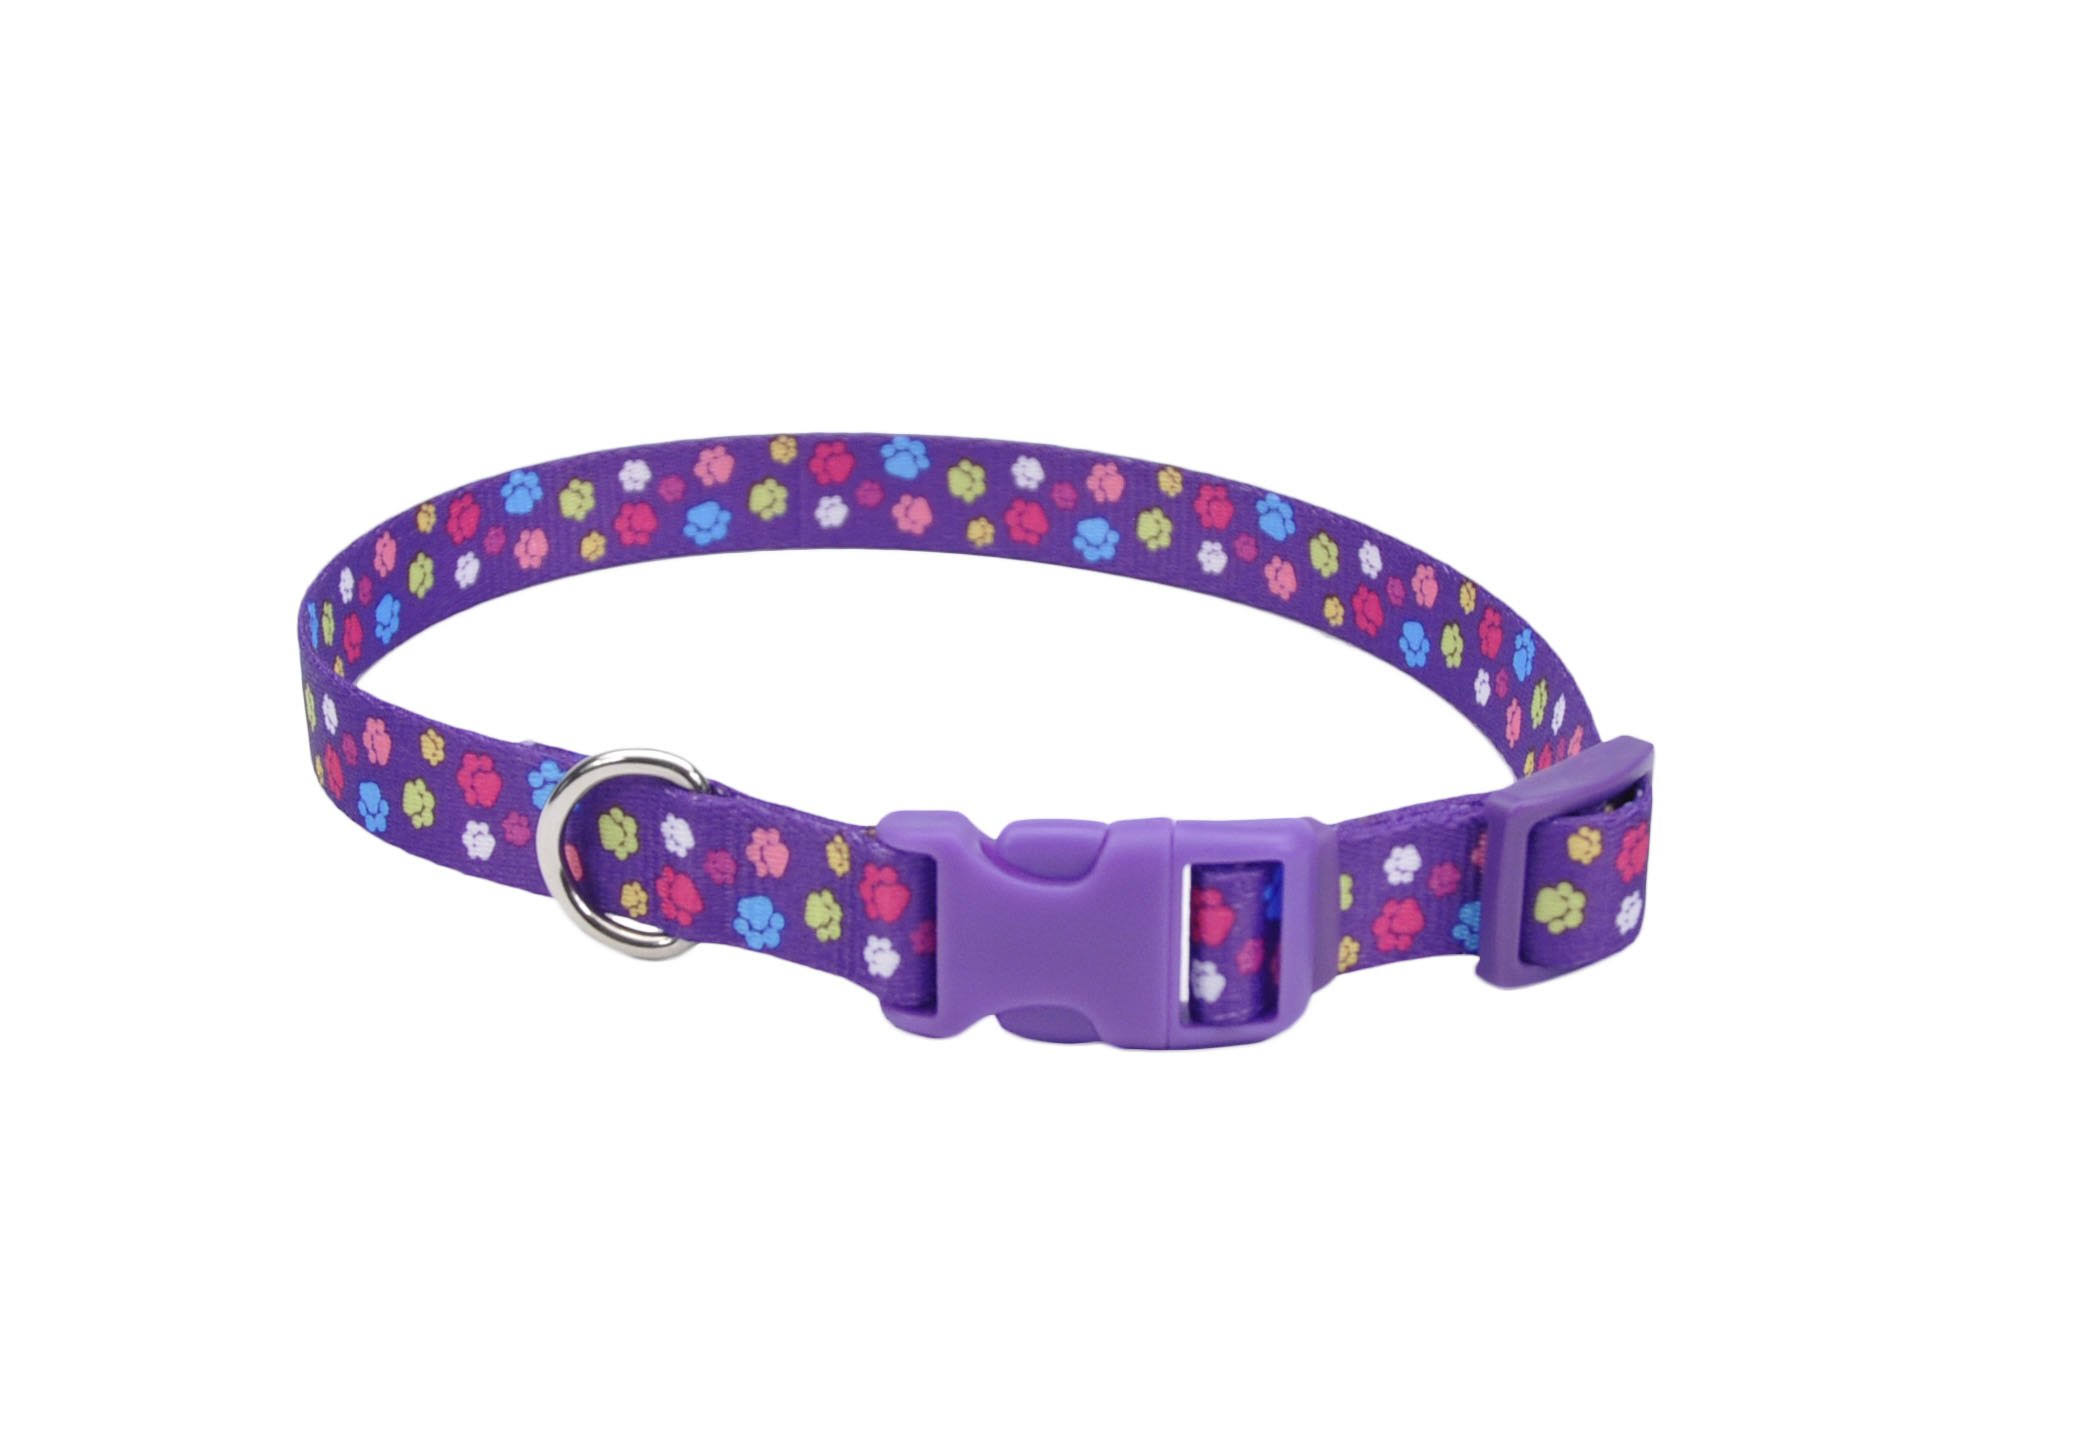 "Pet Attire Styles Special Paws Print Adjustable Dog Collar - Purple, 18-28"" x 1"""